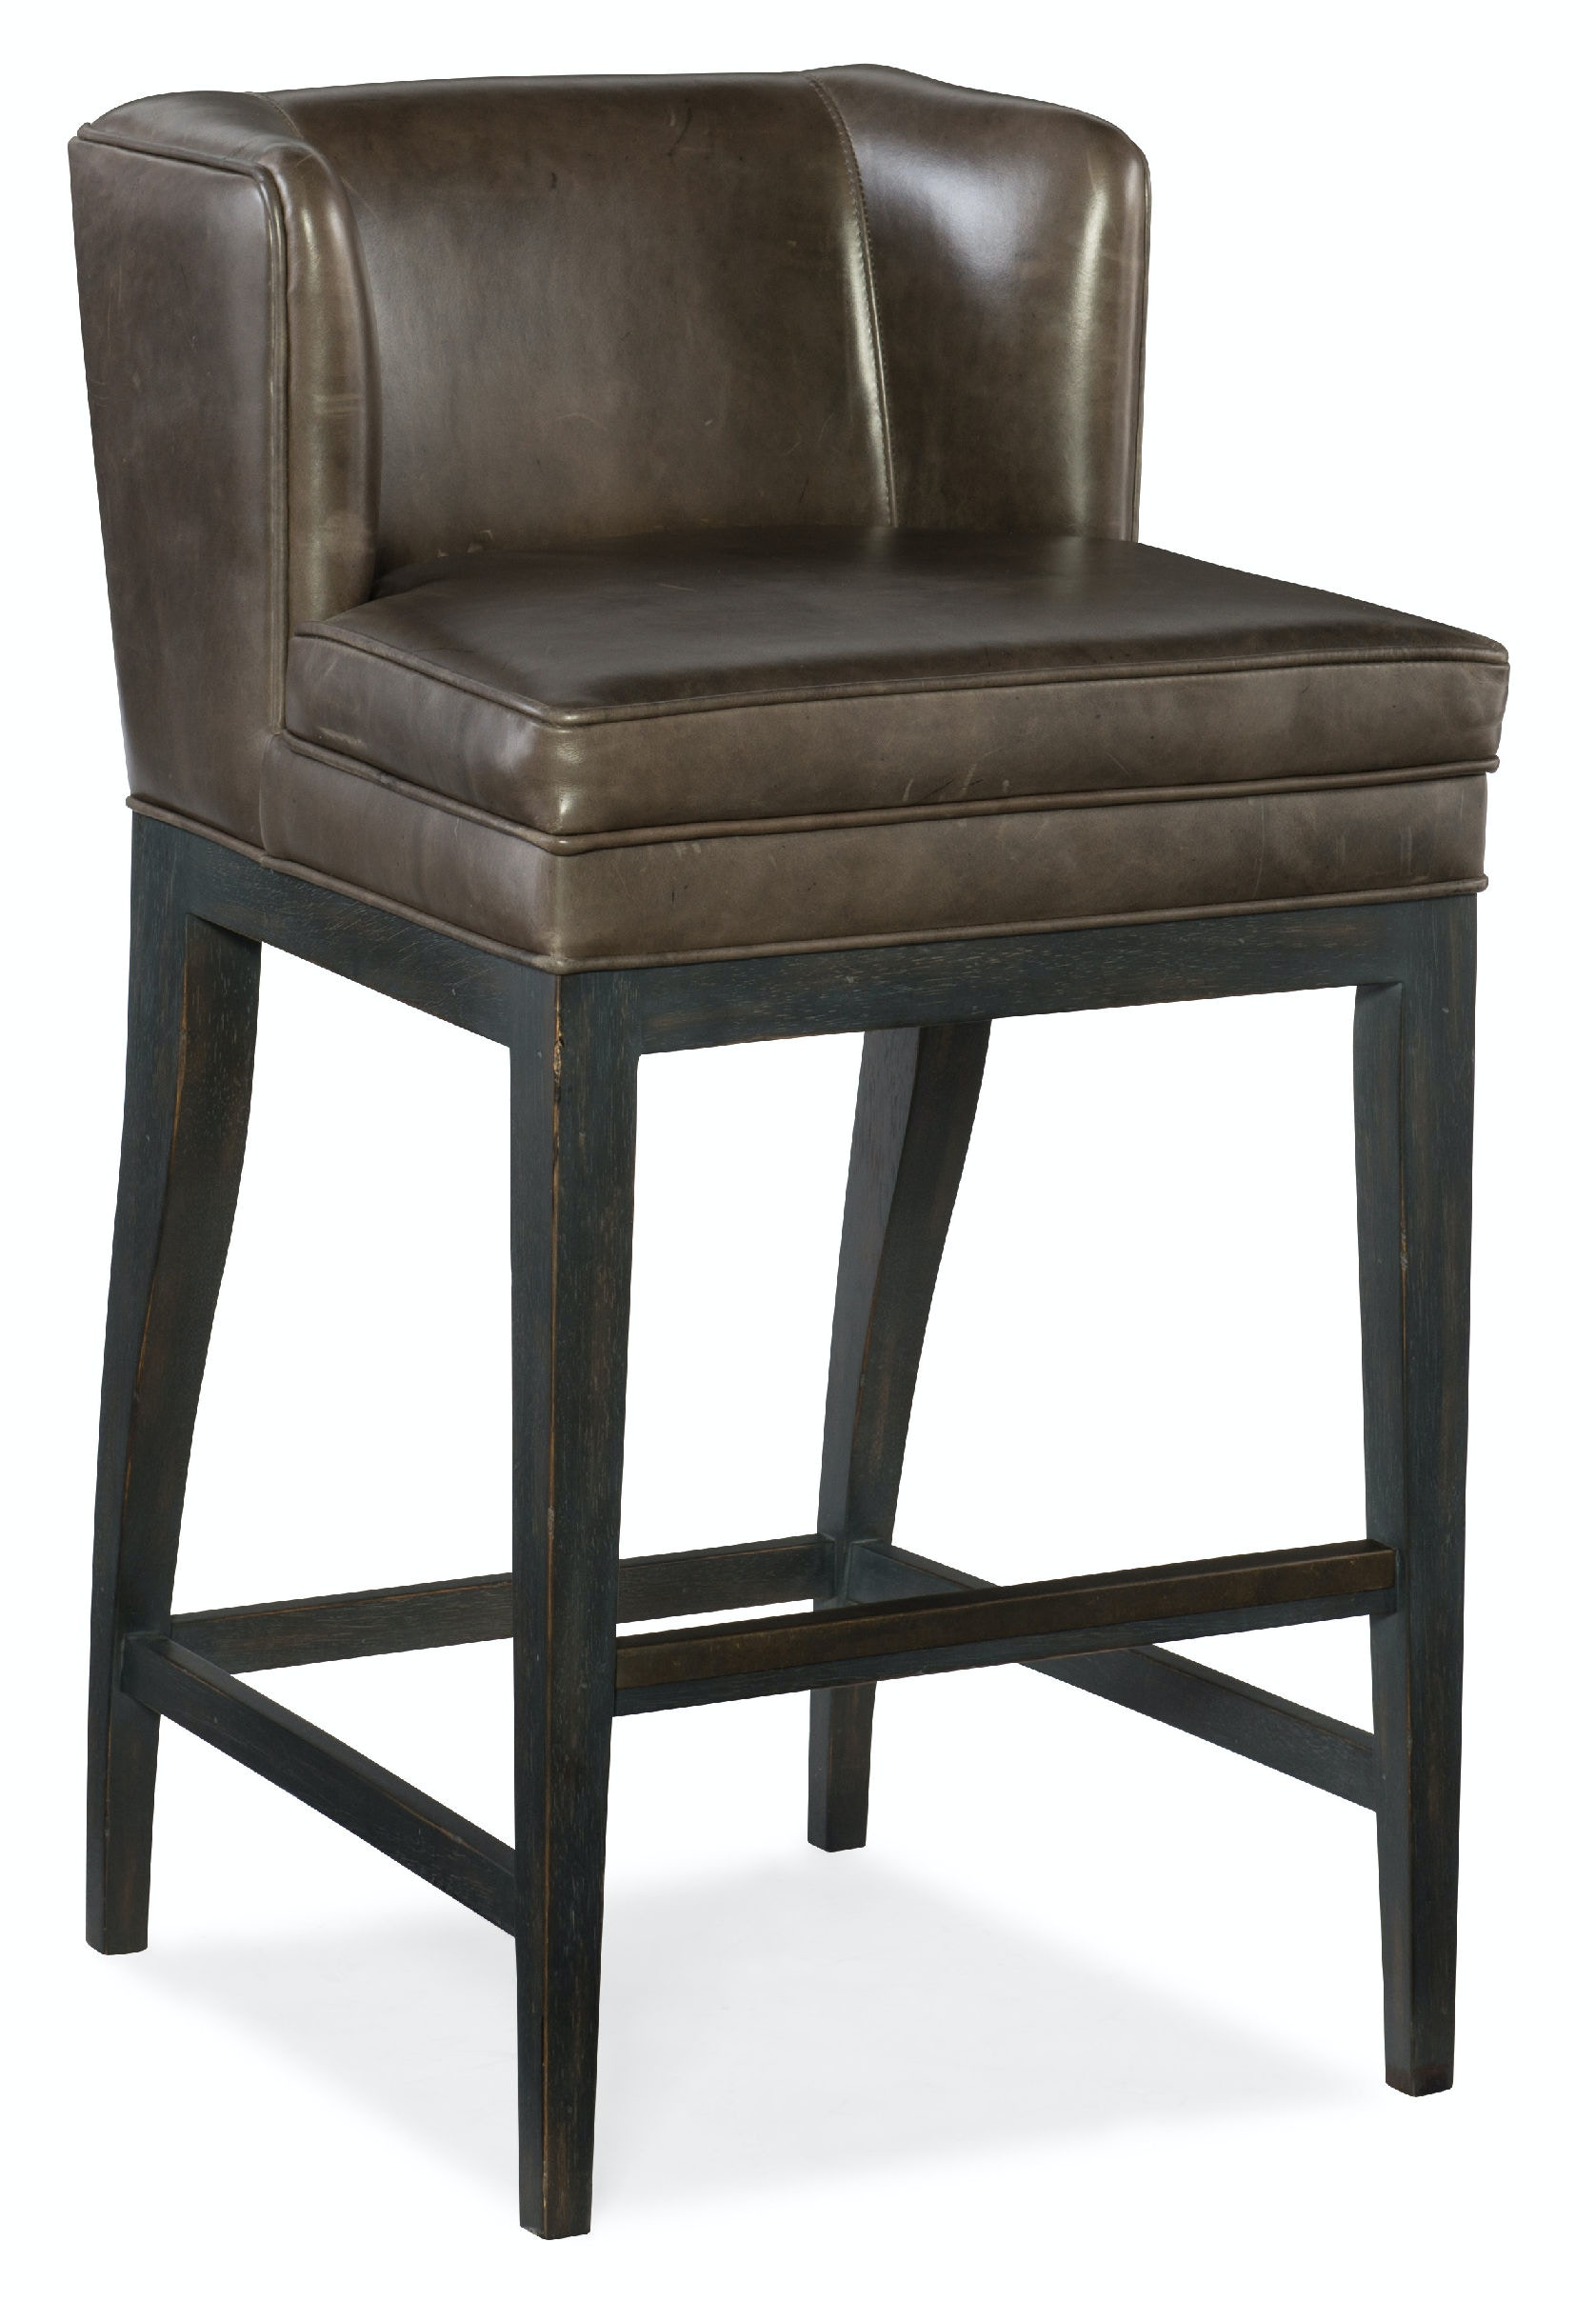 Hooker Furniture Jada Contemporary Barstool 300 20057